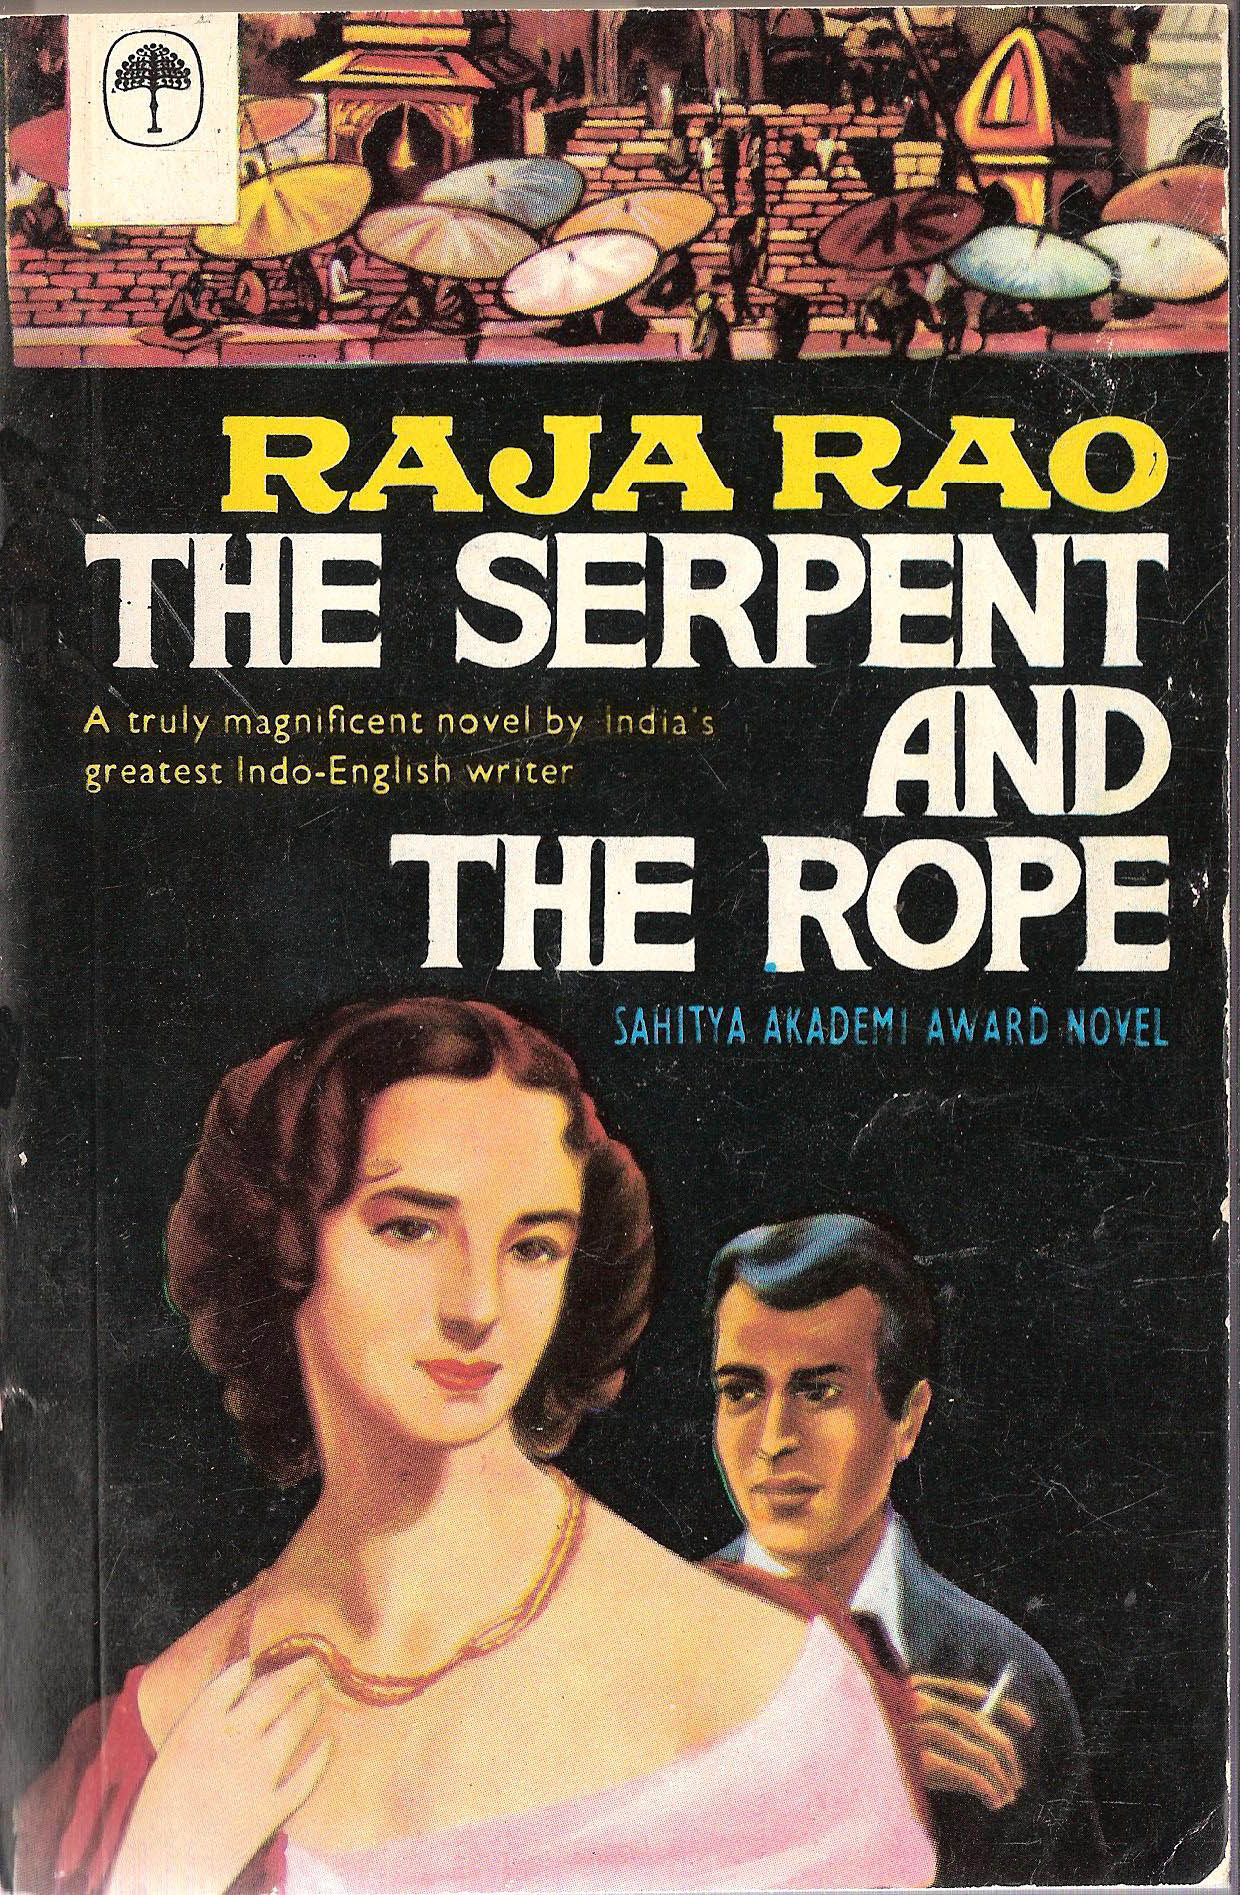 Raja Rao, Serpent and the Rope